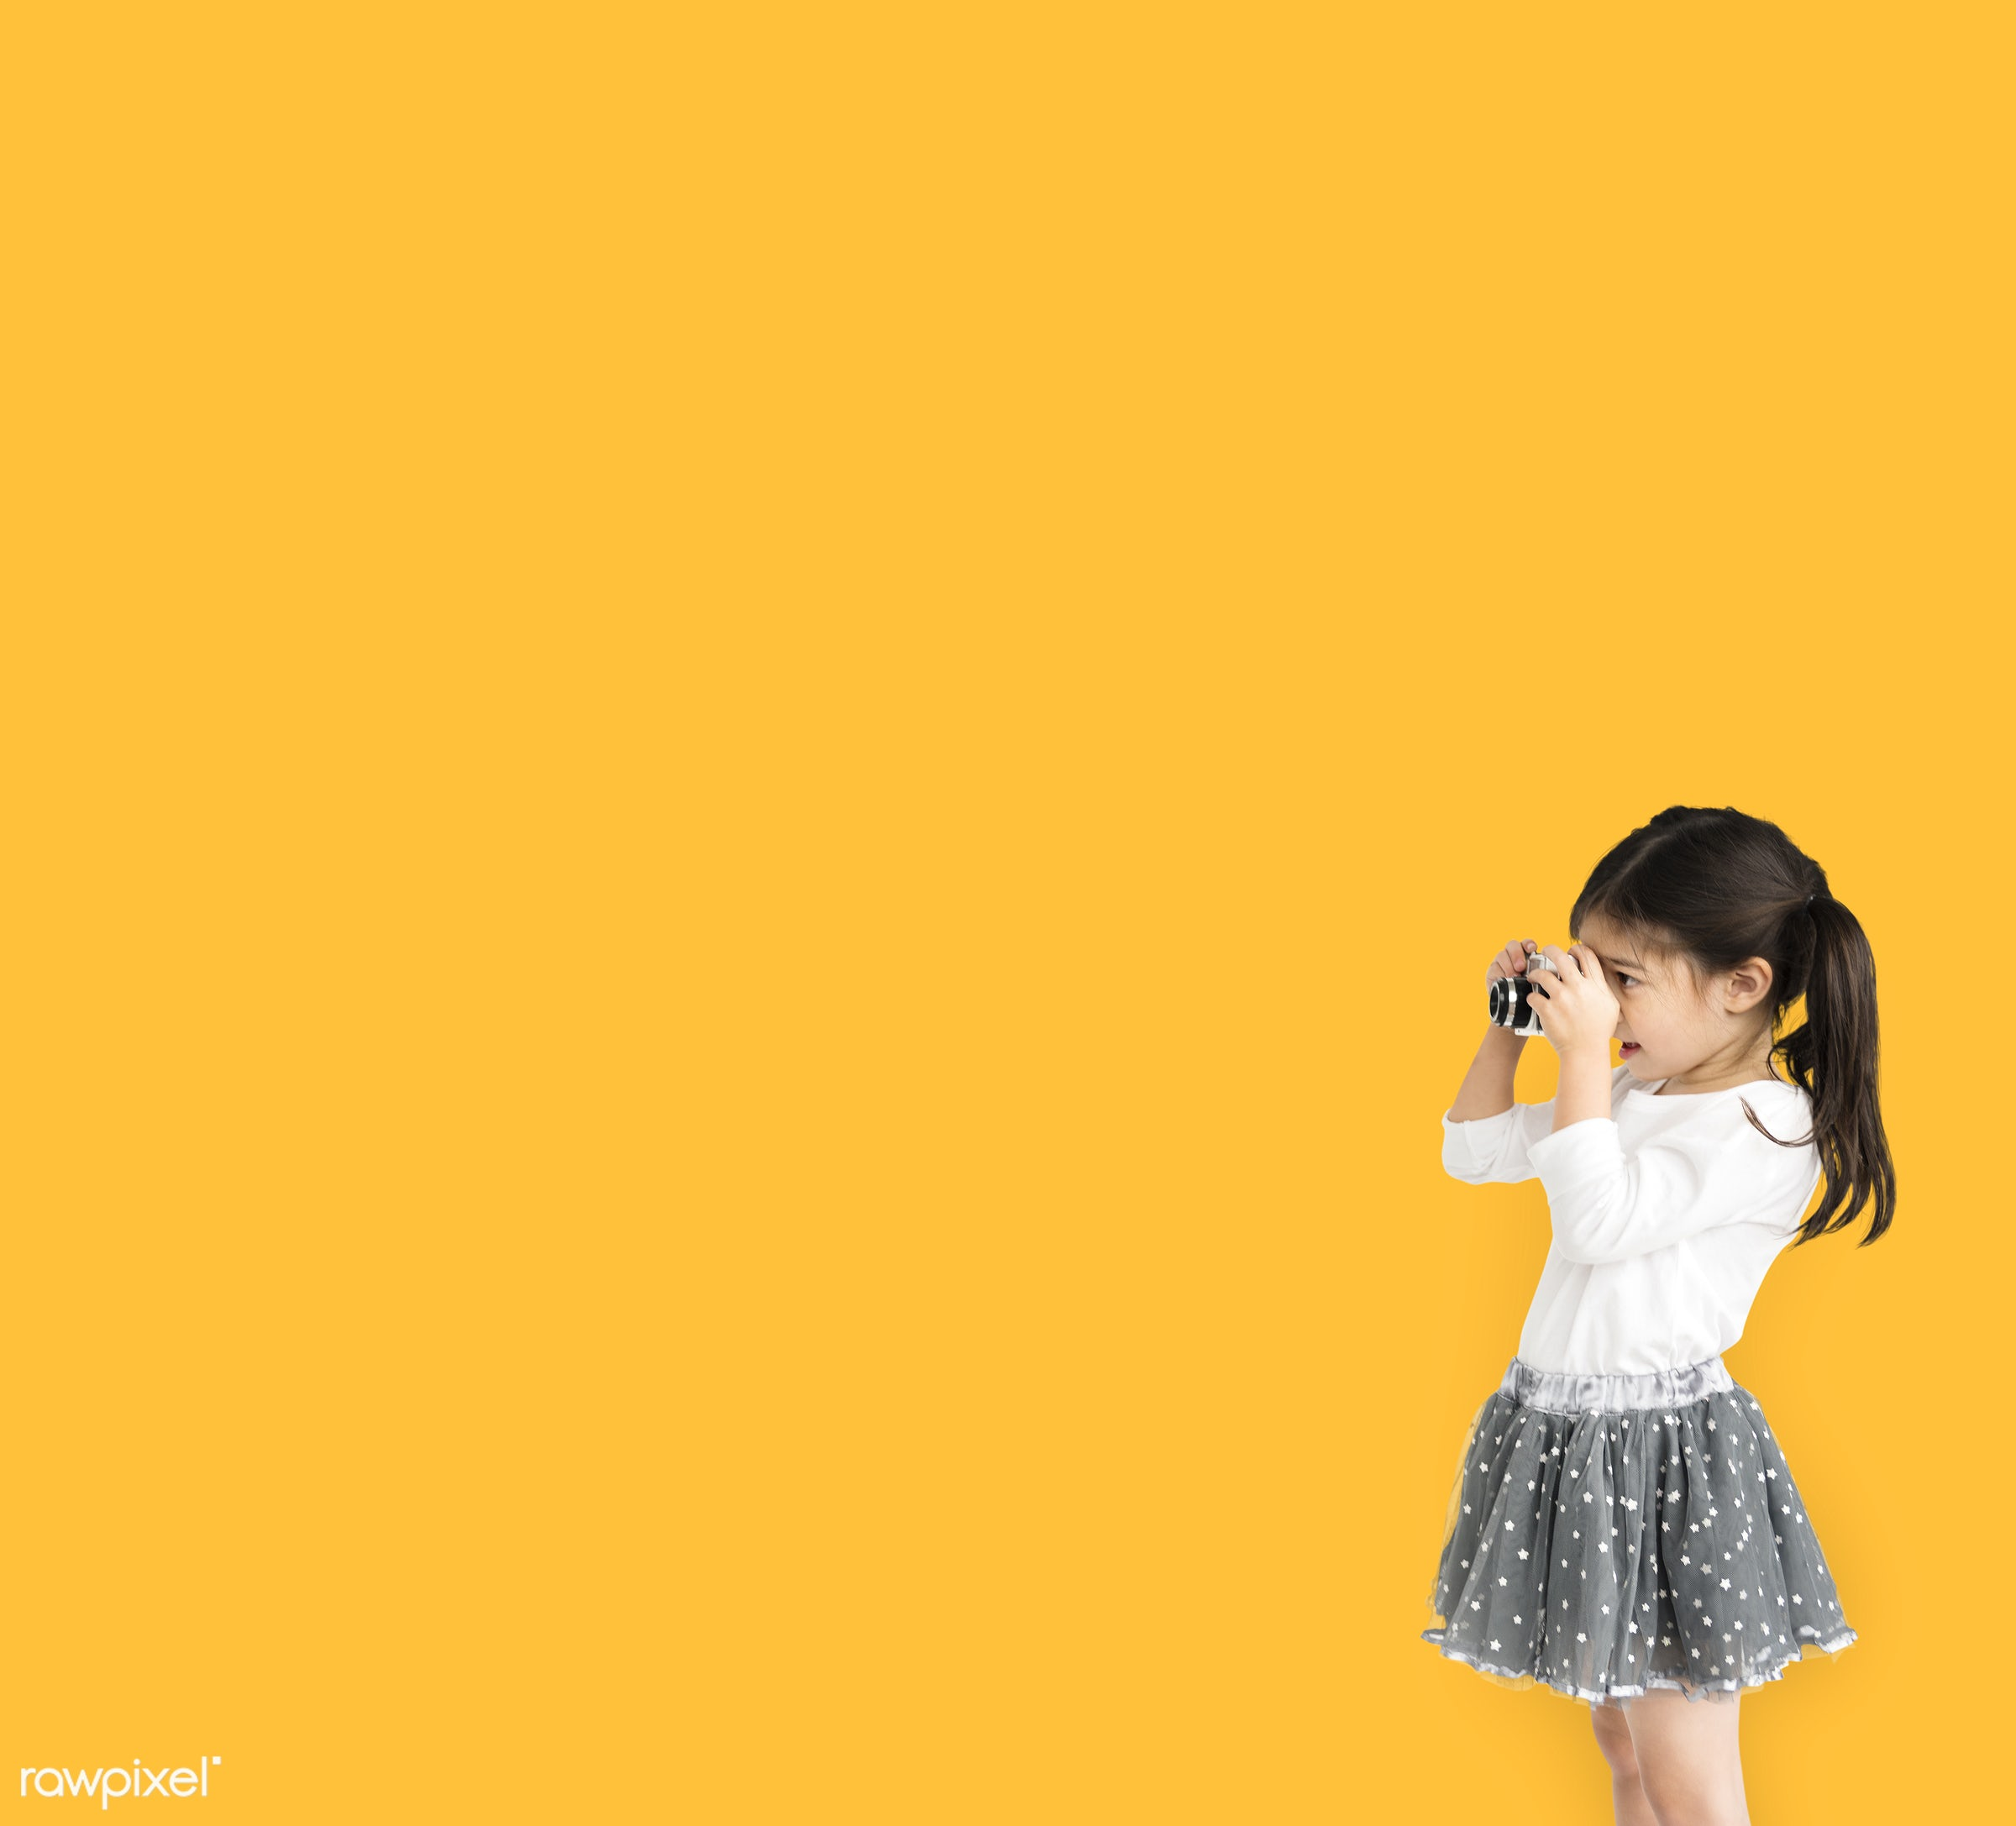 studio, person, innocent, little, yellow, people, kid, curious, solo, search, childhood, alone, isolated, leisure, youth,...